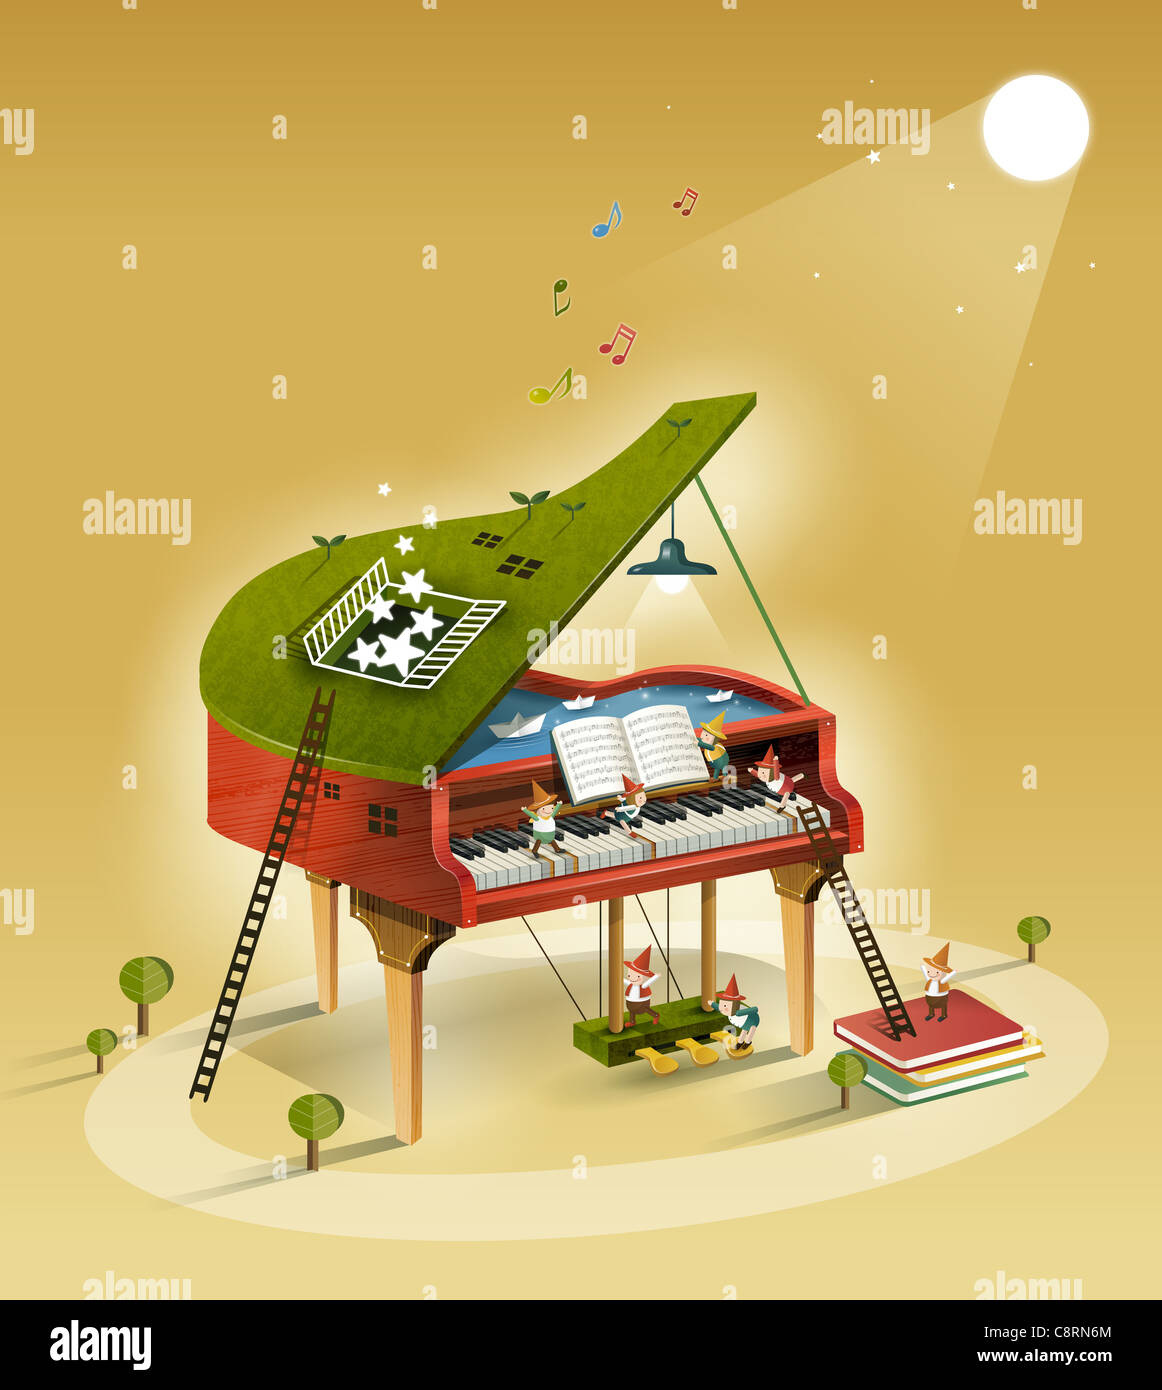 People Playing Piano - Stock Image